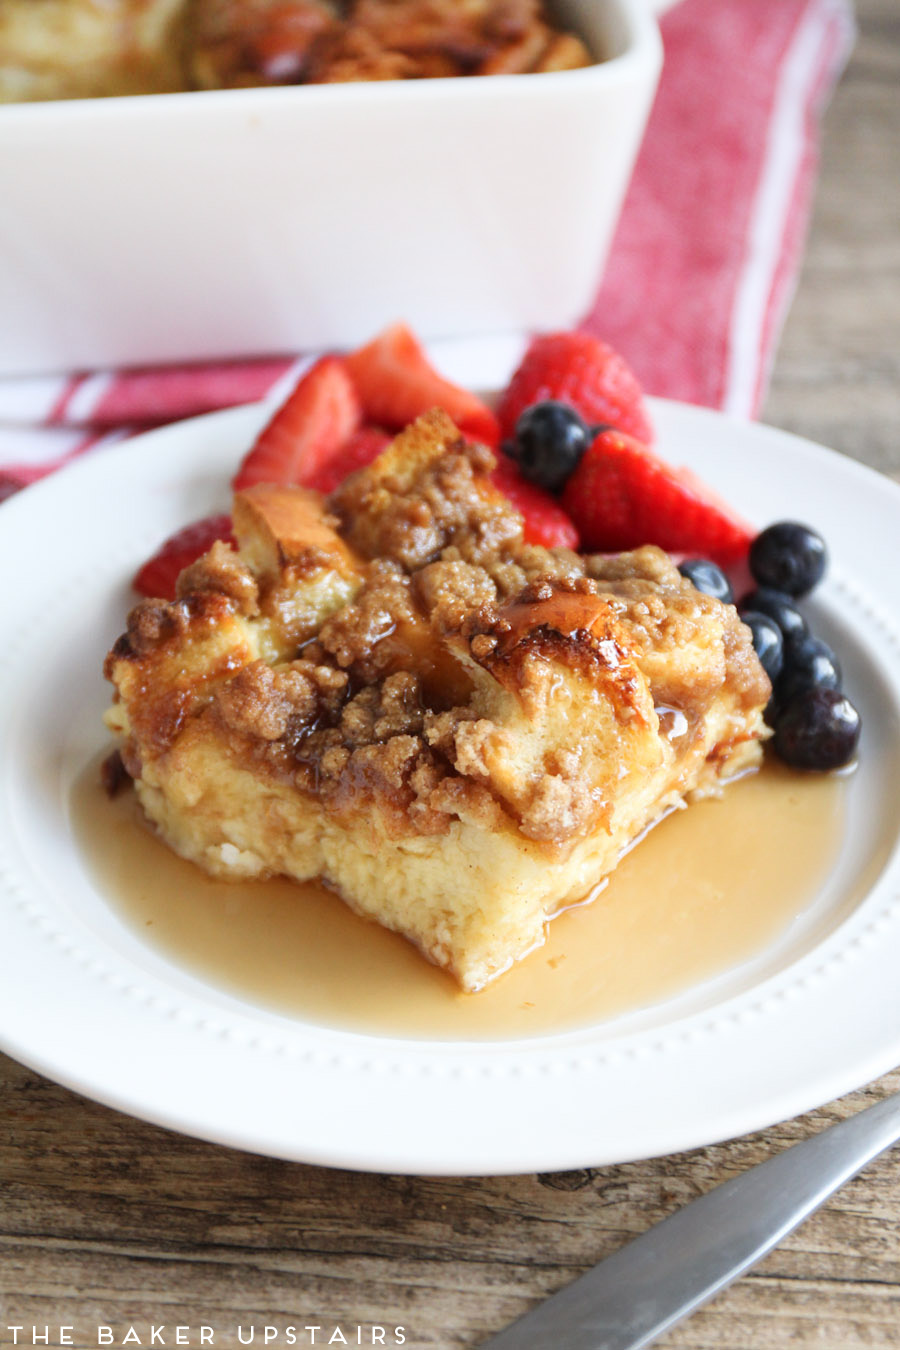 baked cinnamon french toast for the french toast 1 loaf